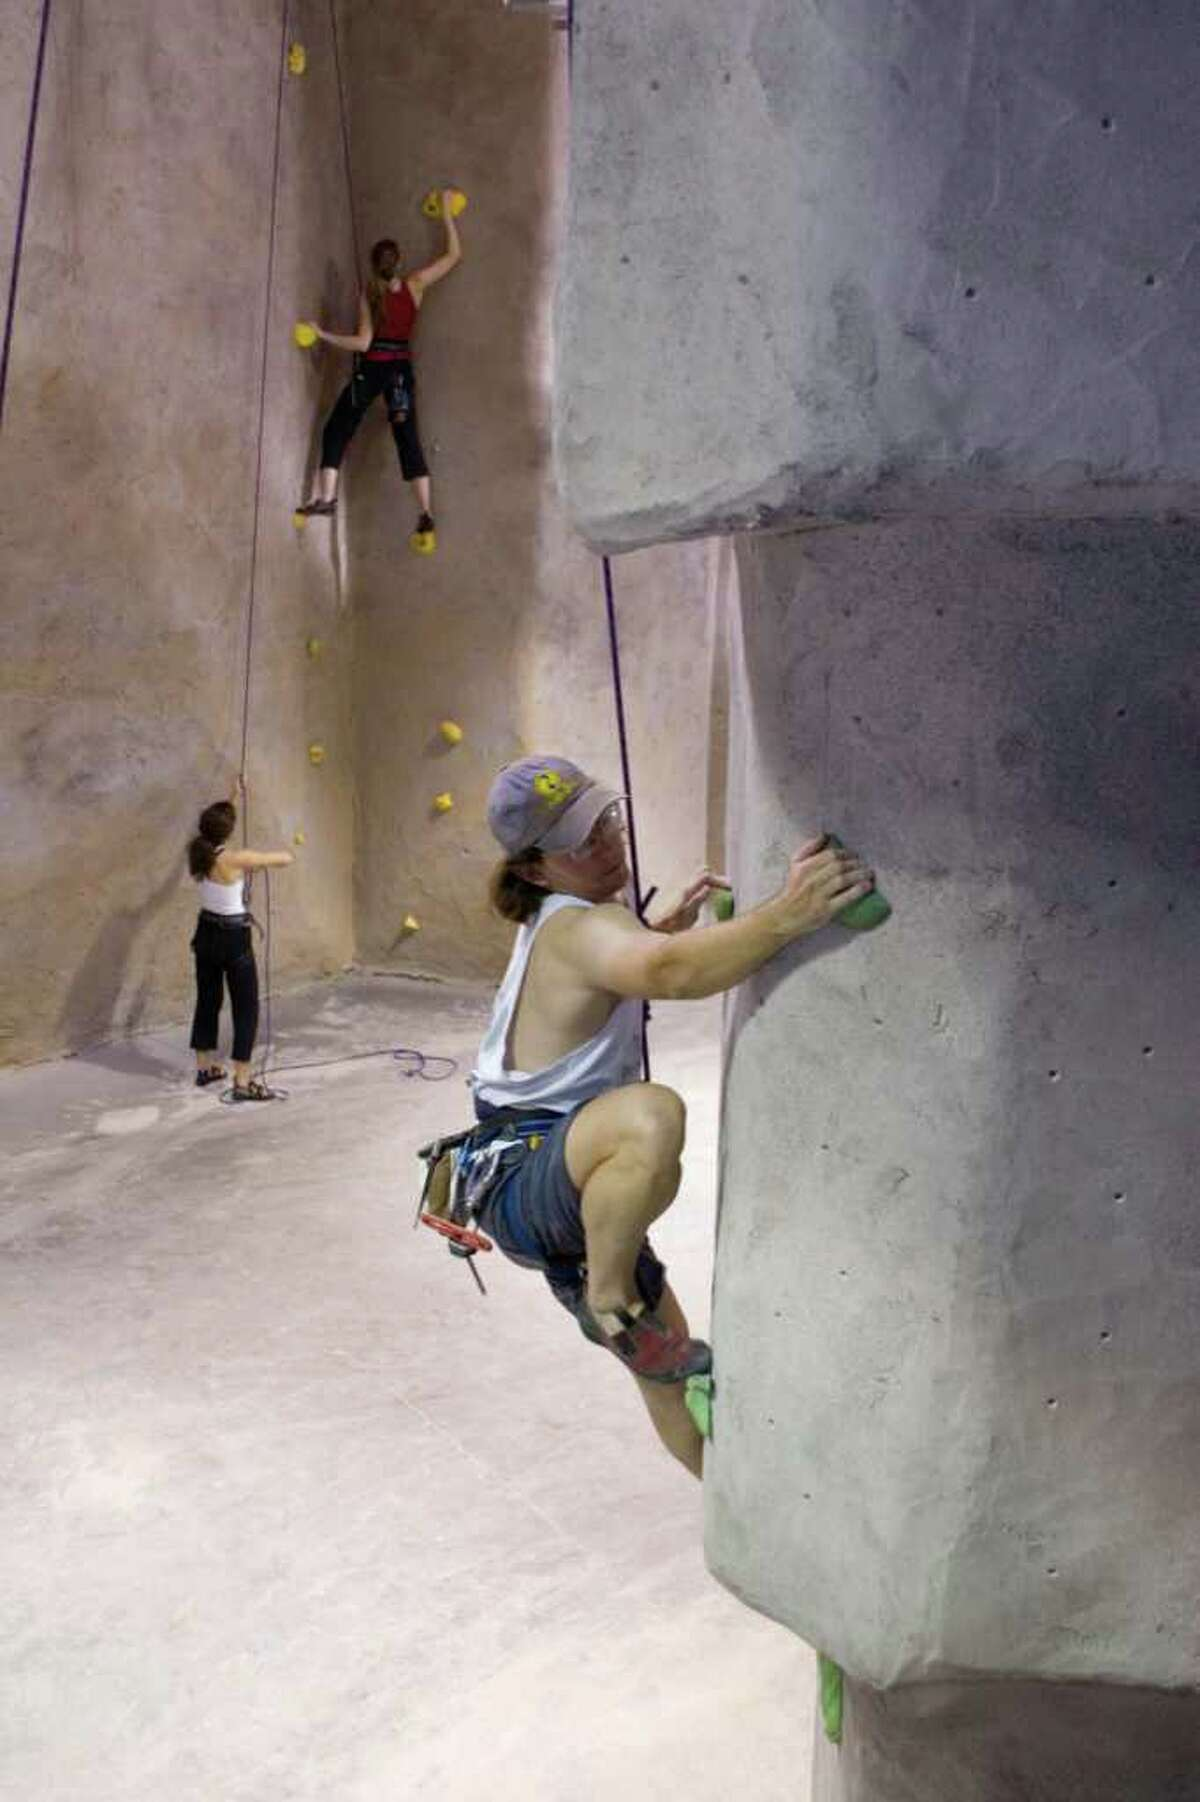 Climb the highest Hone in on your inner monkeying abilities and head out to a local rock climbing gym around Houston. The photo above is from Texas Rock Gym inside the Beltway, but there are many others around town for couples to check out.